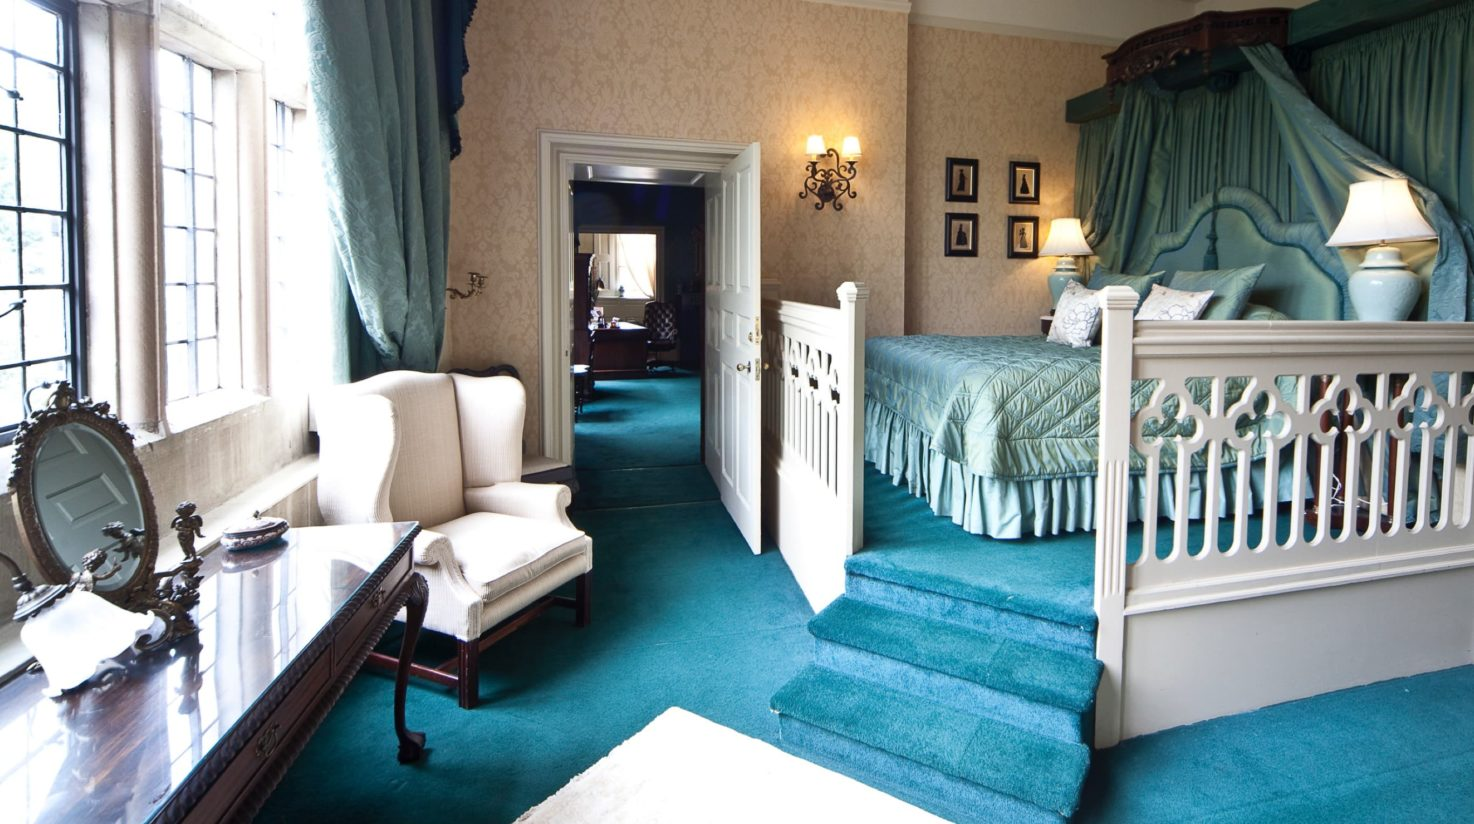 Lindley Suite at Coombe Abbey